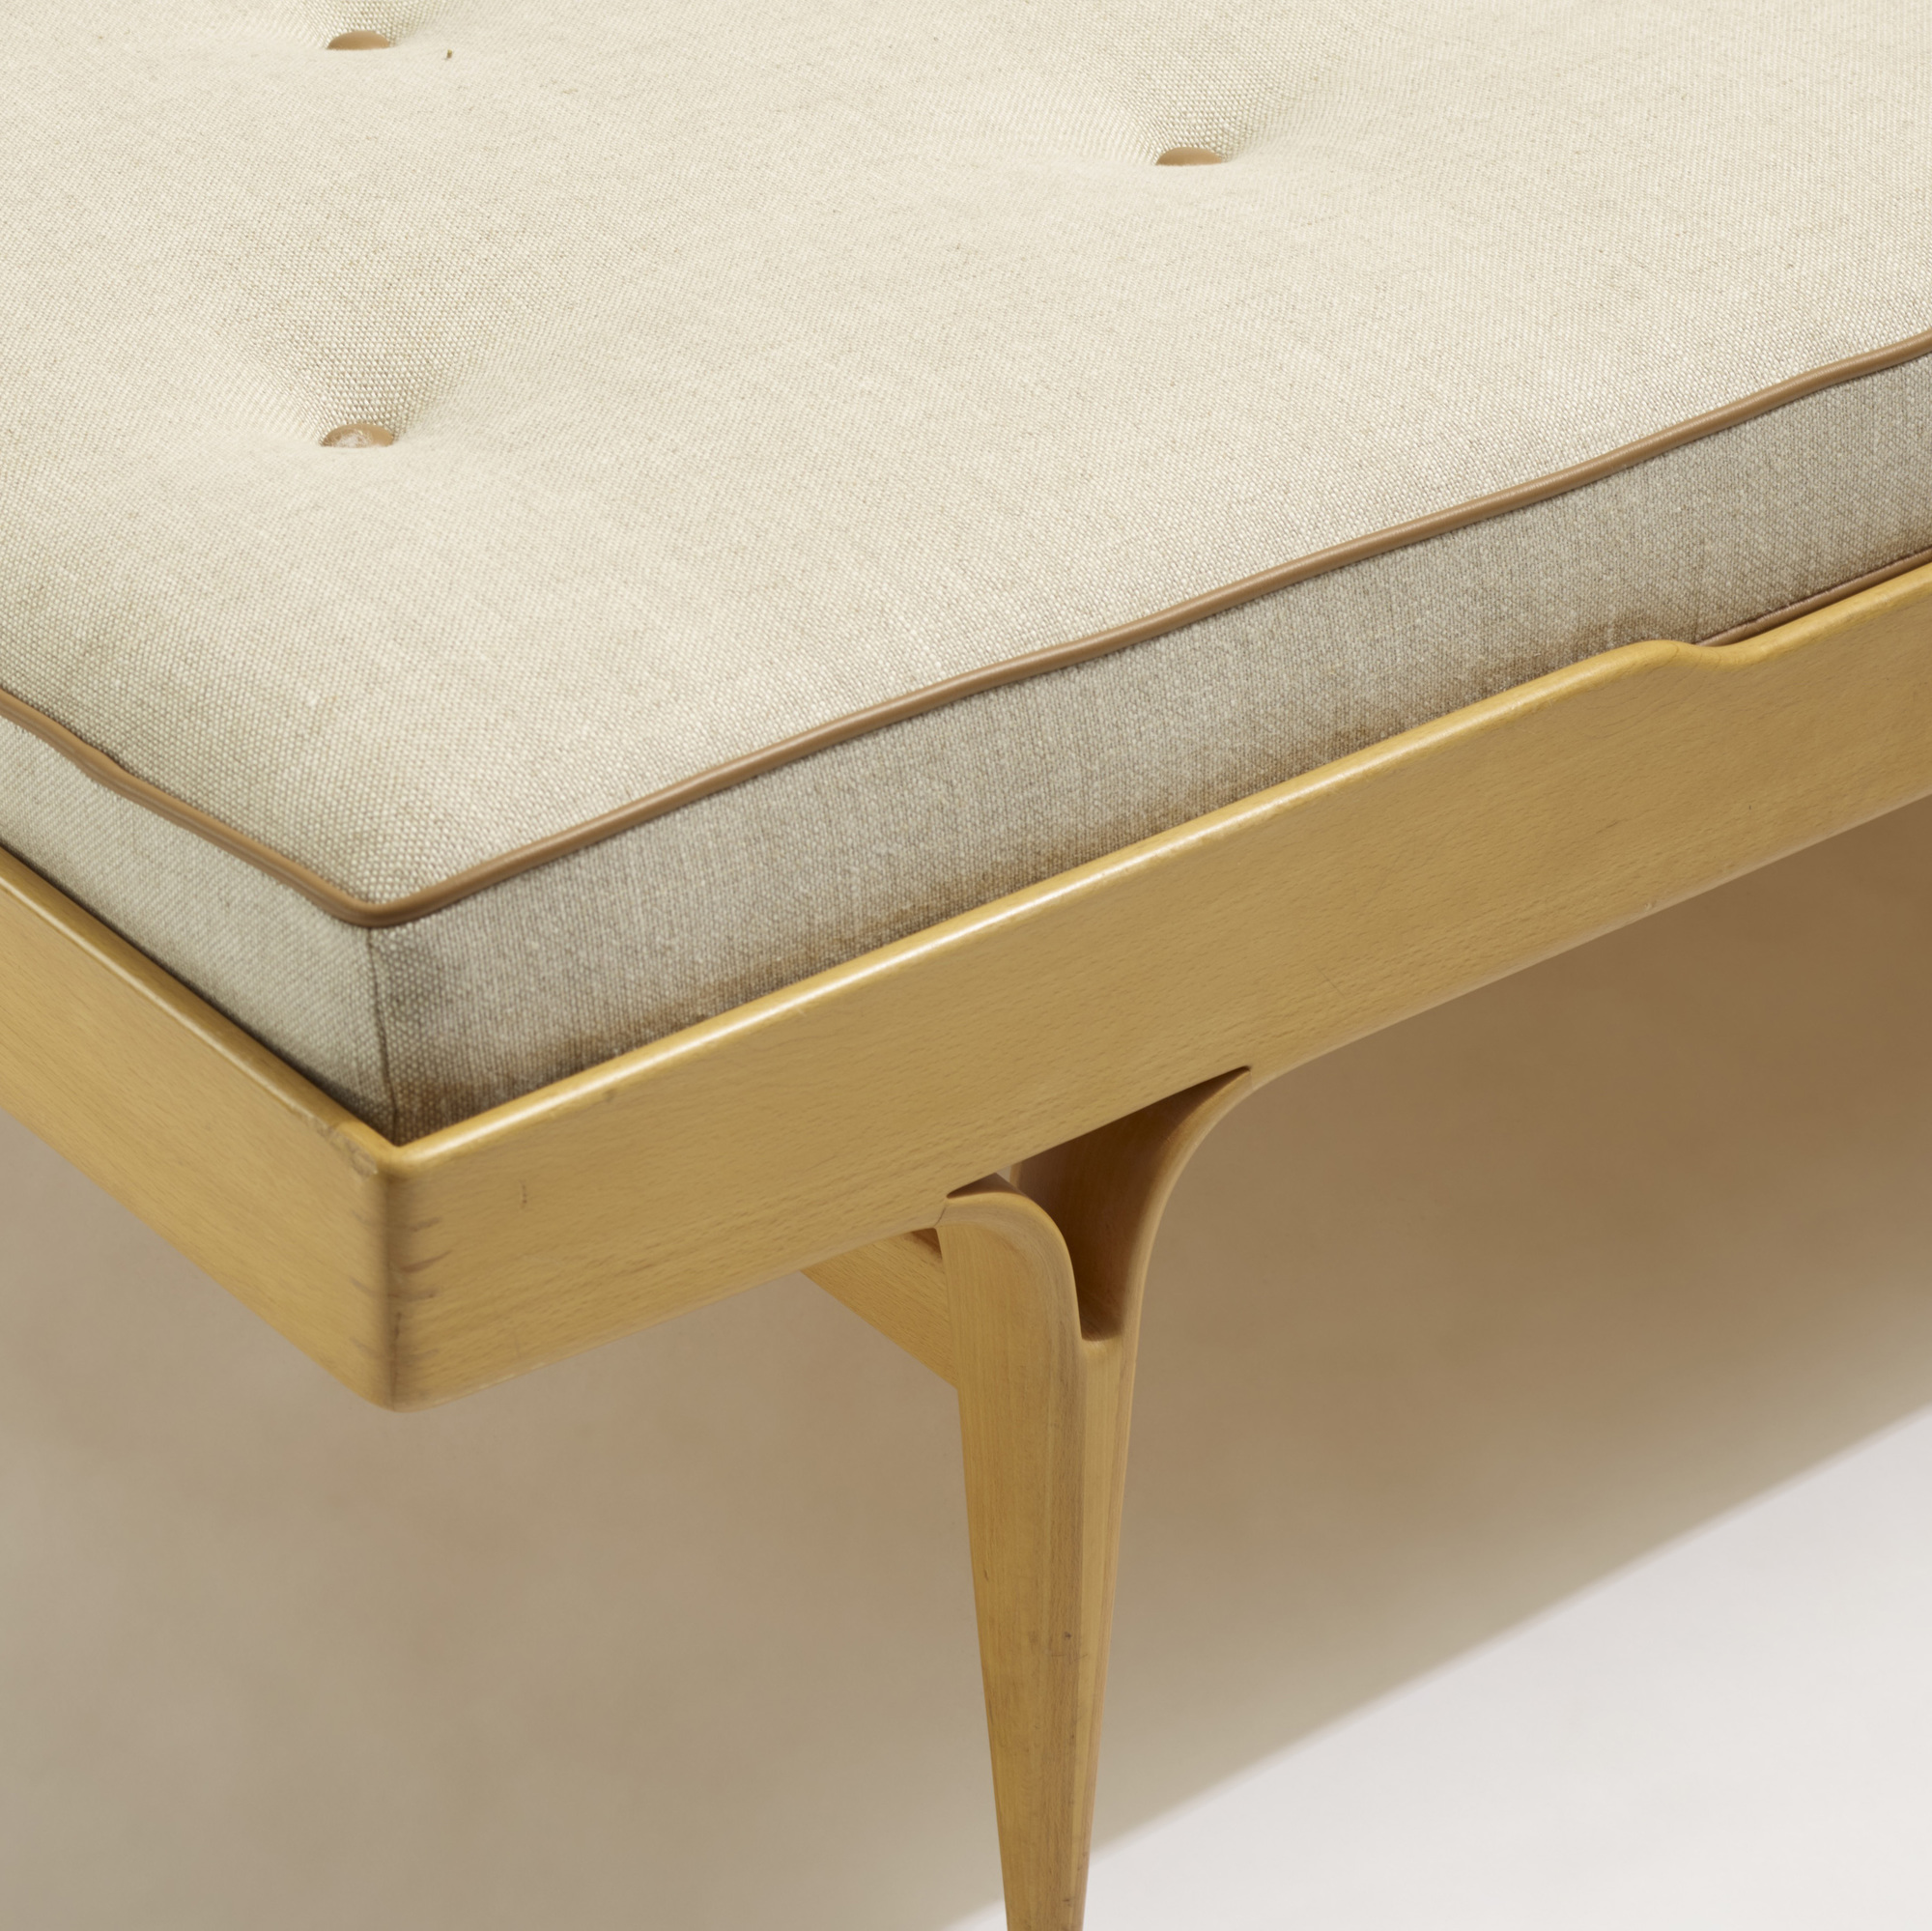 317: Bruno Mathsson / daybed (3 of 3)